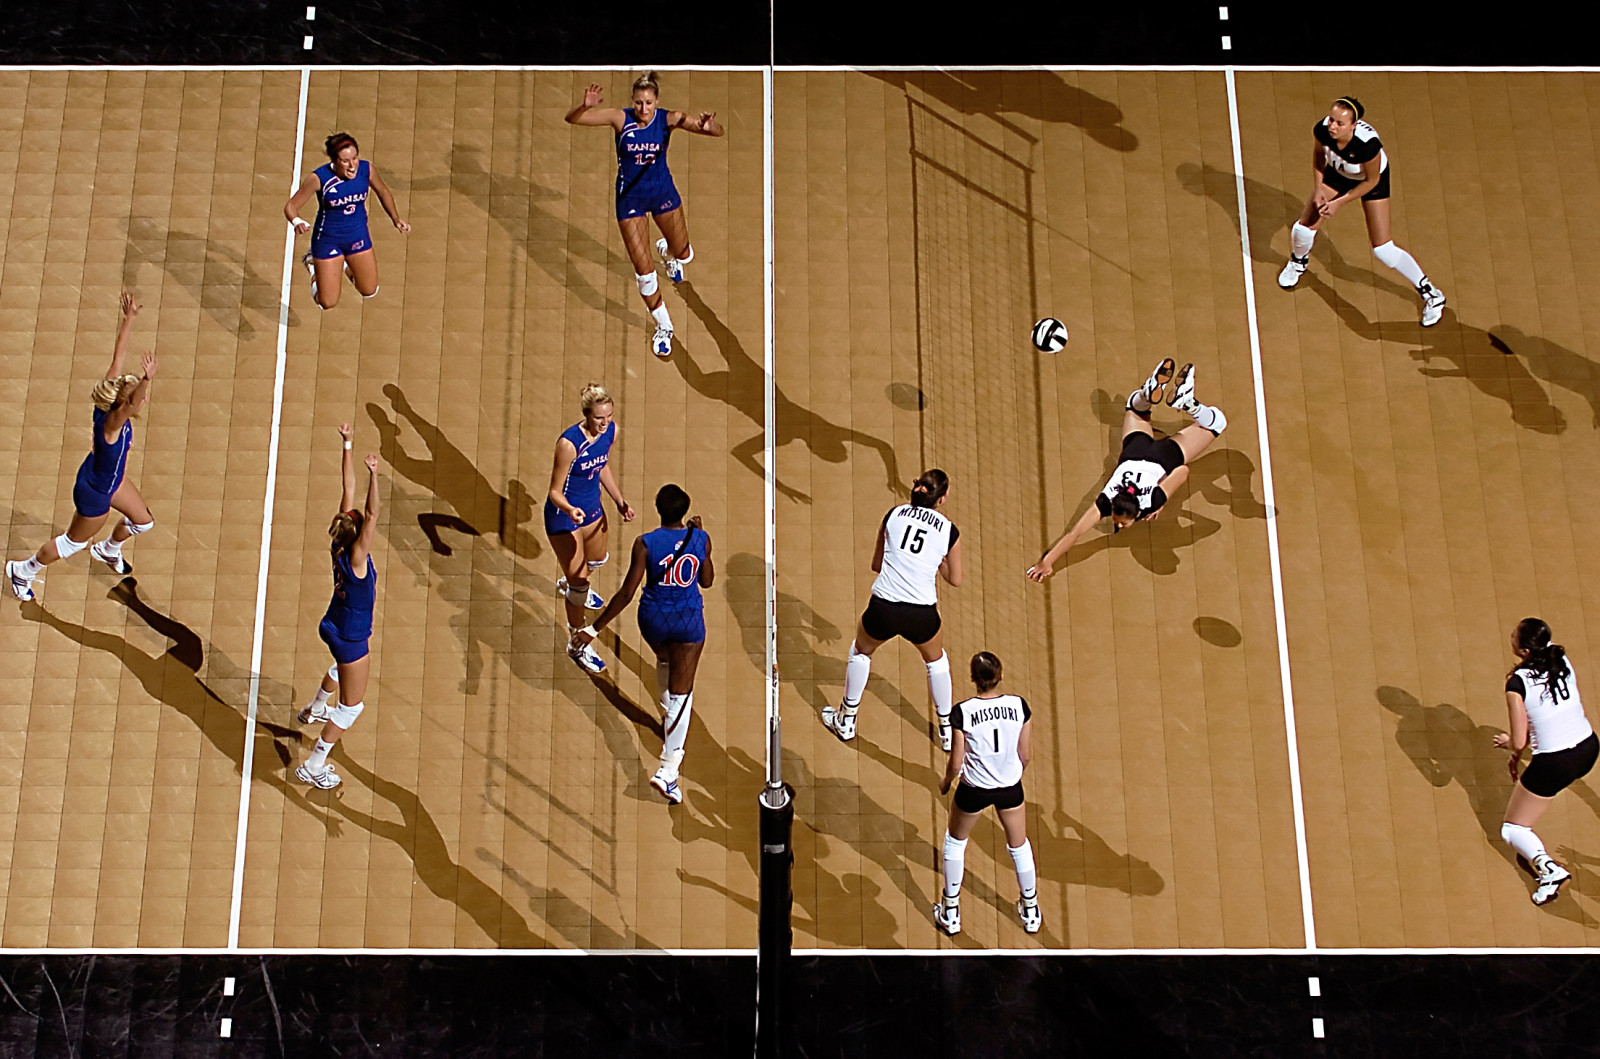 Parker Eshelman photo University of Kansas volleyball players, left, celebrate a point after Missouri's Weiwen Wang (13) was unable to keep the ball in play during the closing minutes of the 5th game of Missouri's 23-30, 30-26, 30-20, 28-30,  7-15 loss at the Hearnes Center, Wednesday. Sept2007/MUSports/MU volley vs KU pe